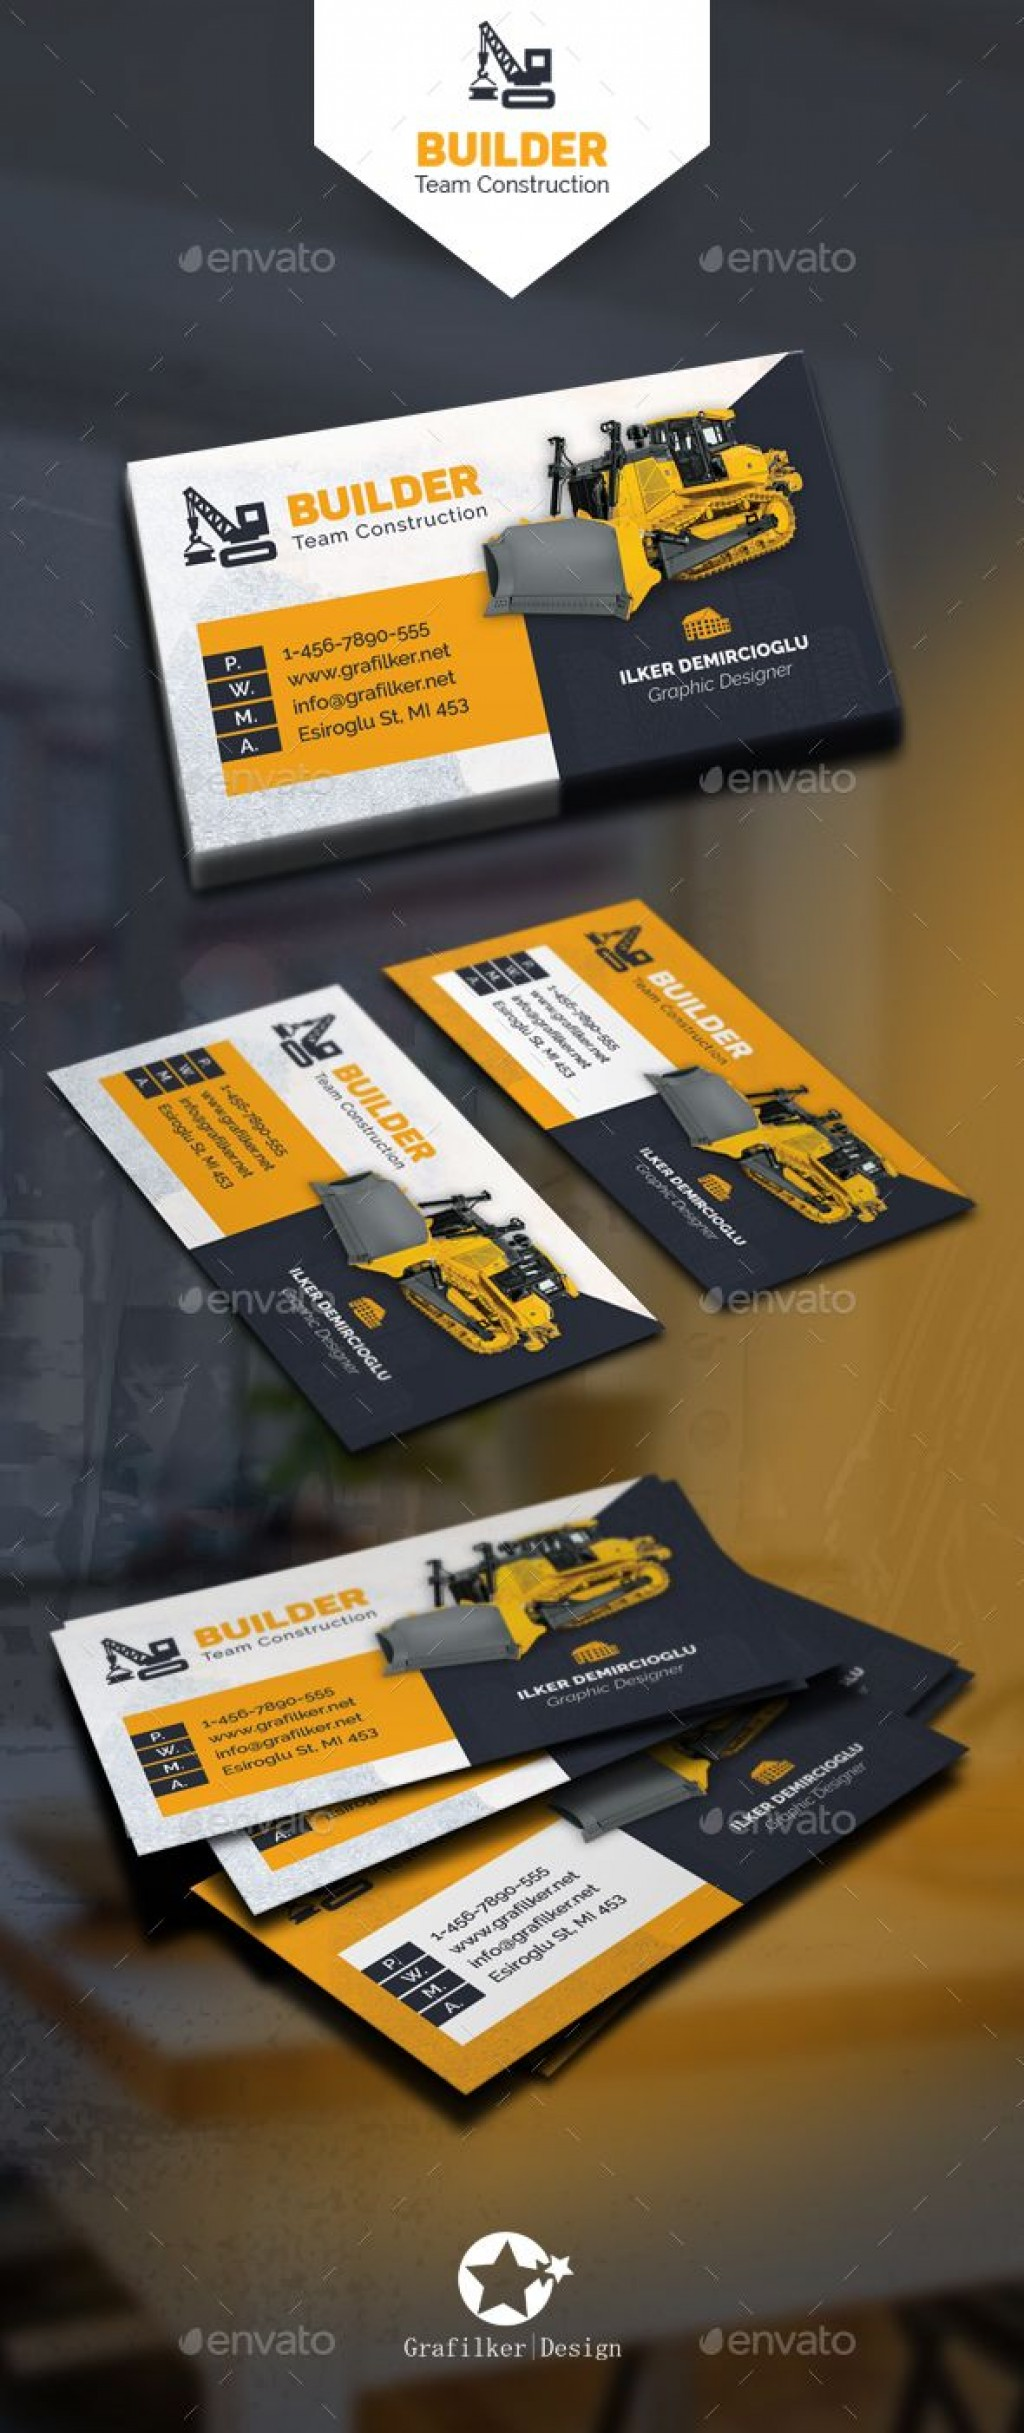 000 Magnificent Construction Busines Card Template Picture  Templates Visiting Company Format Design PsdLarge